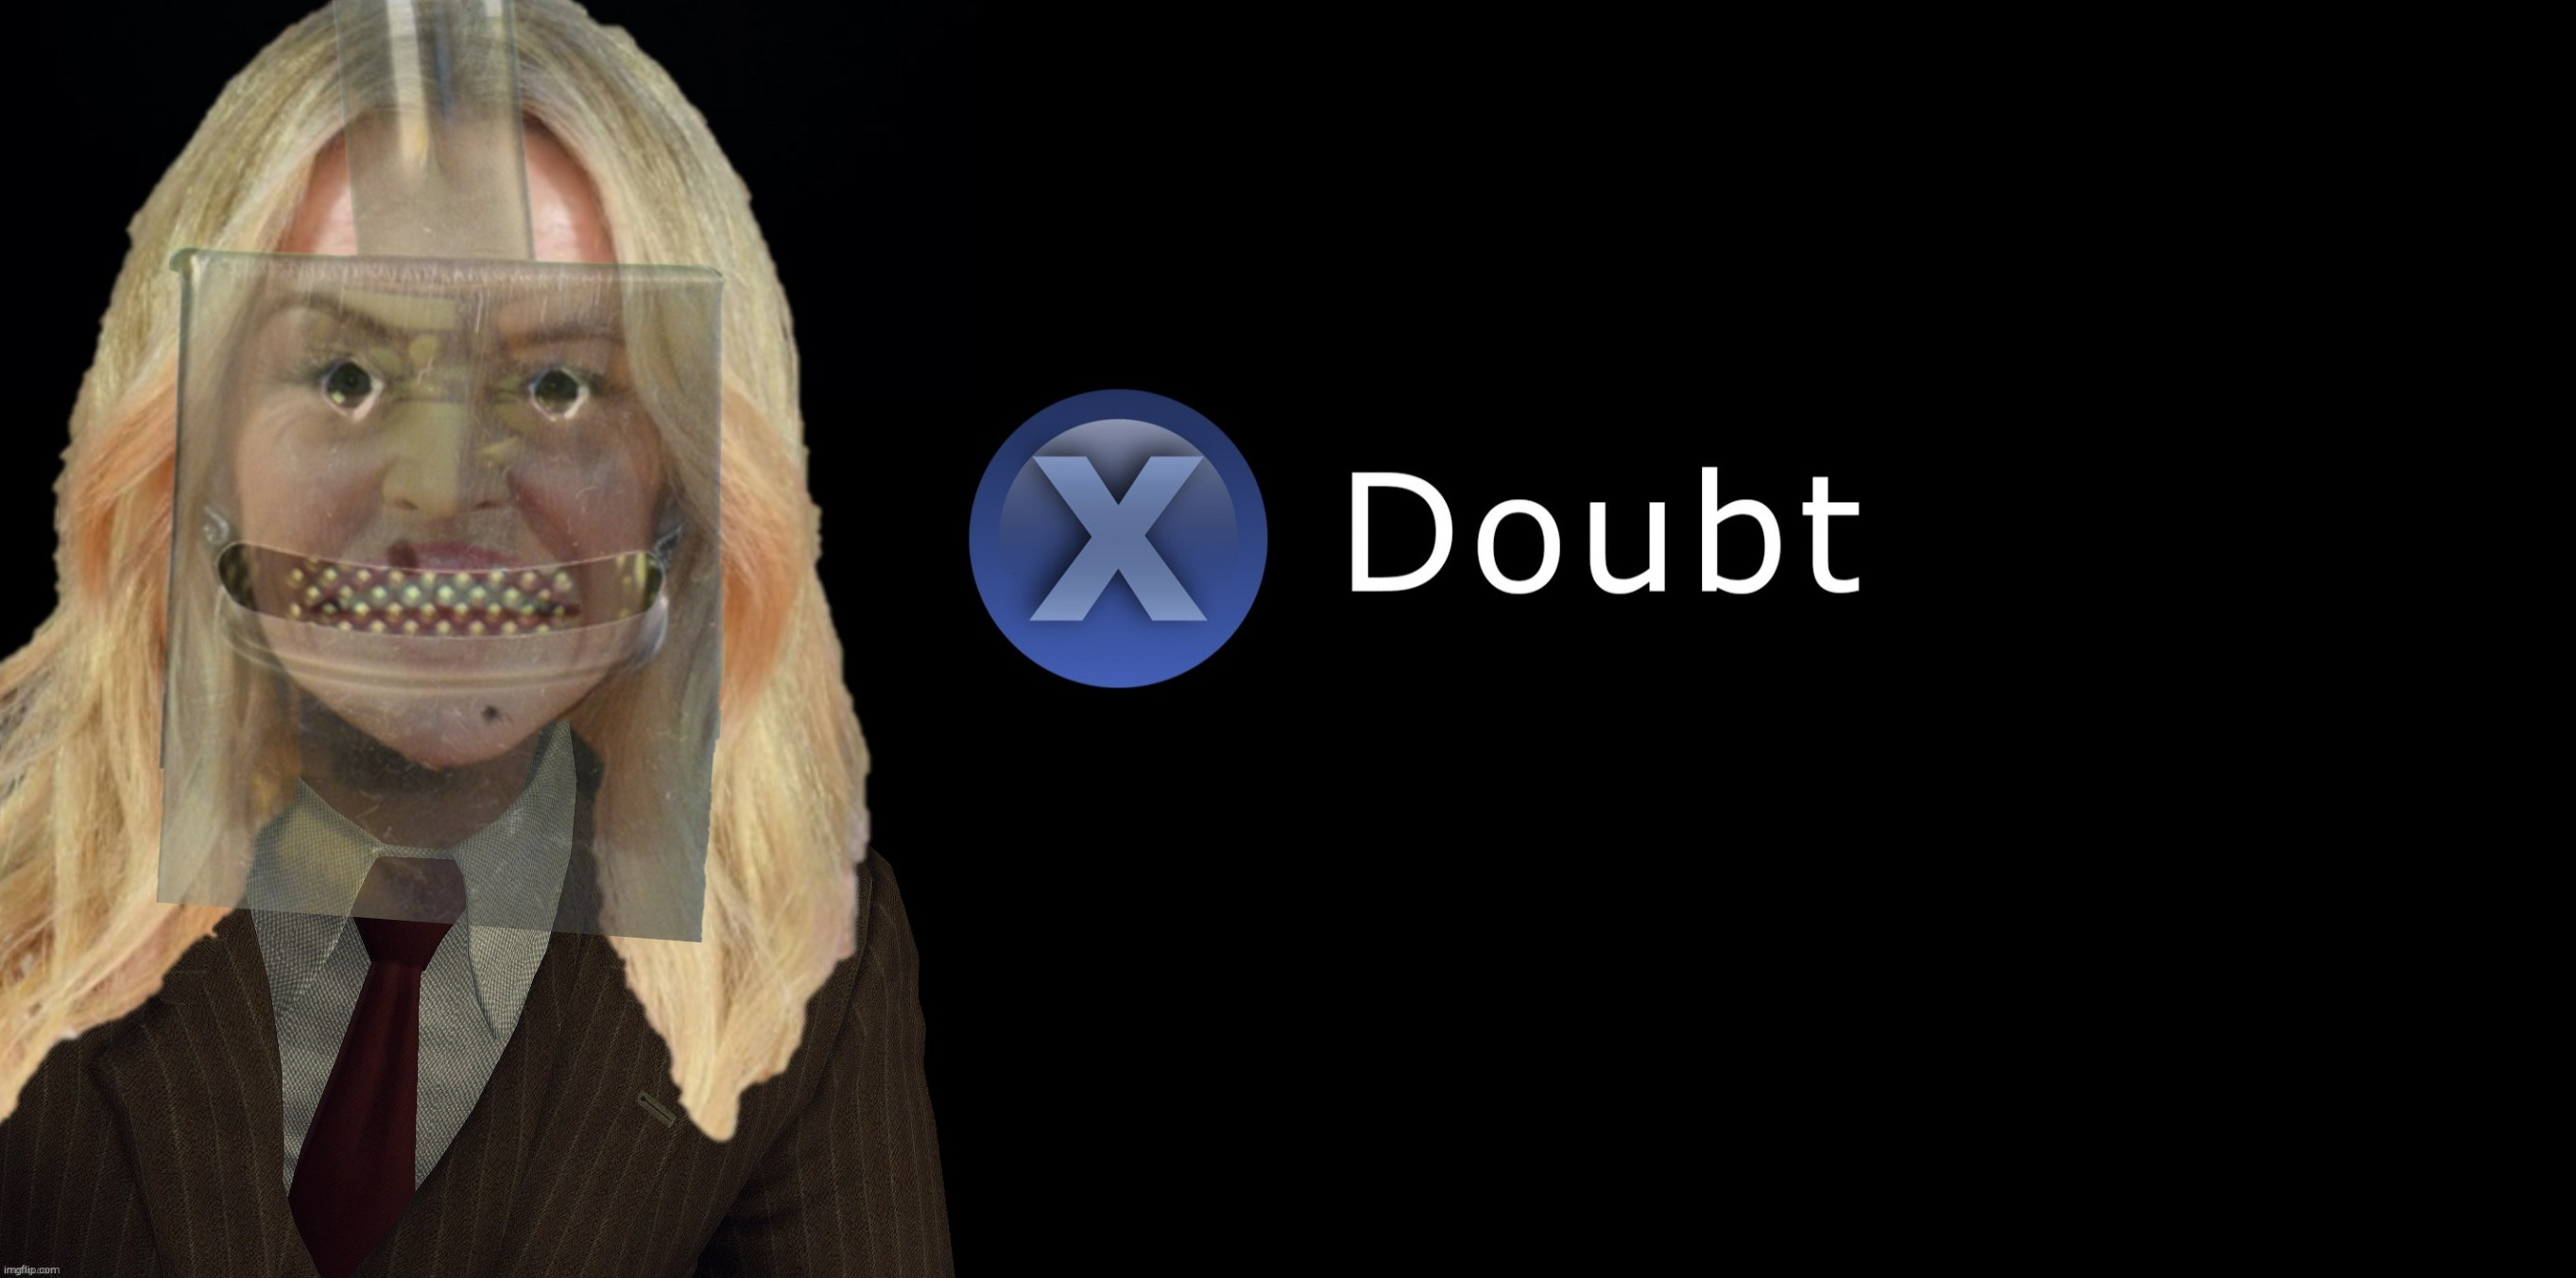 Kylie Minogue Press X to Doubt | image tagged in kylie minogue press x to doubt | made w/ Imgflip meme maker